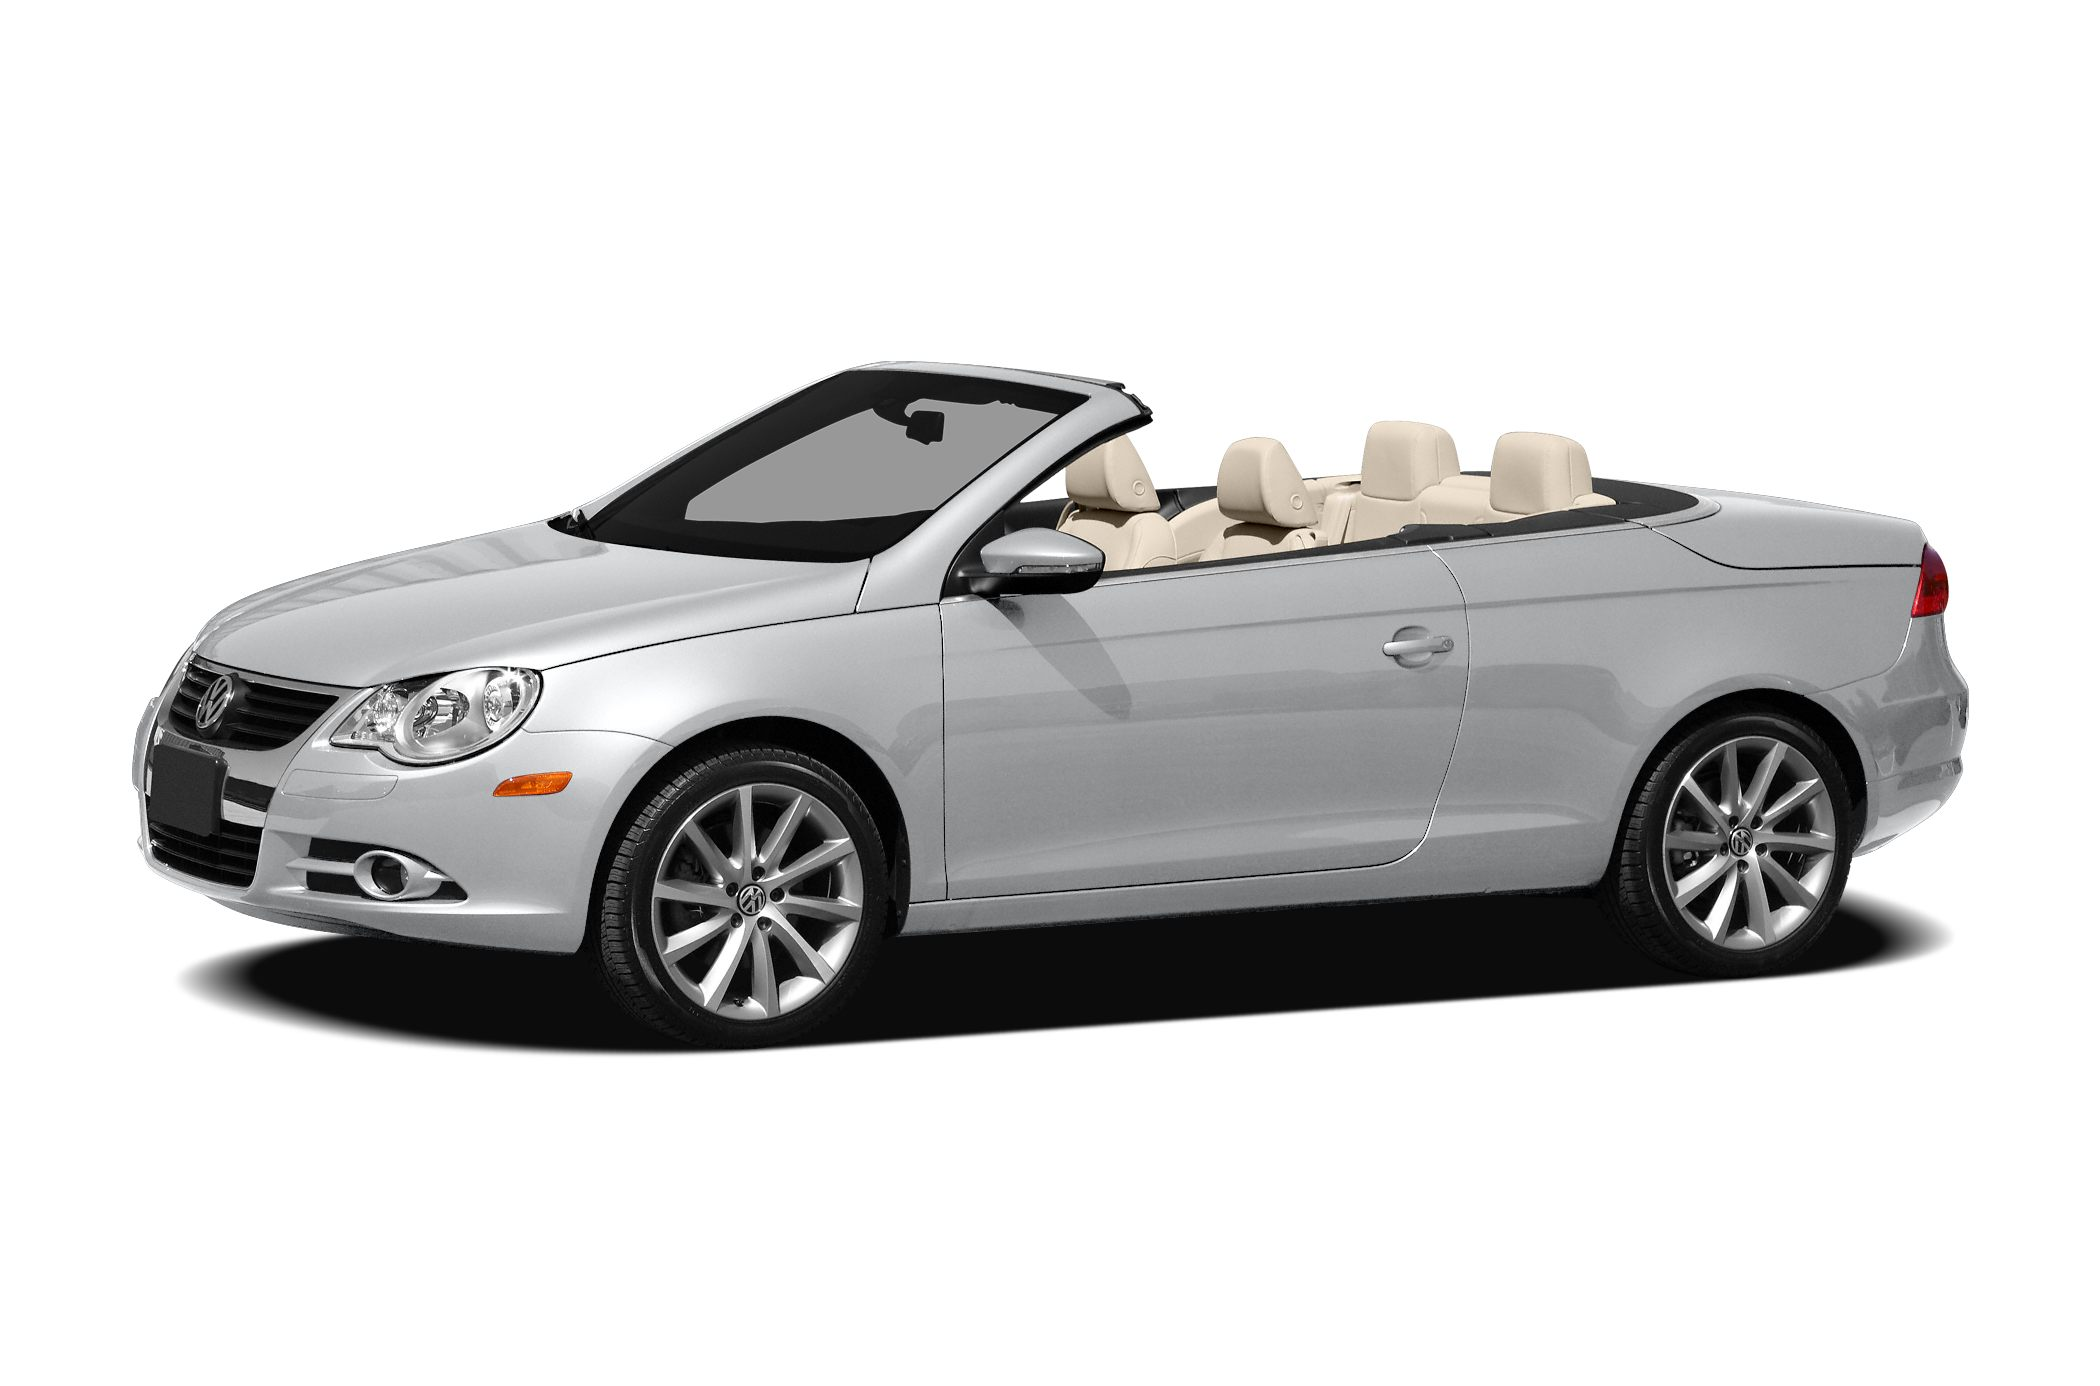 2009 Volkswagen Eos Komfort Convertible for sale in Penfield for $11,991 with 63,679 miles.